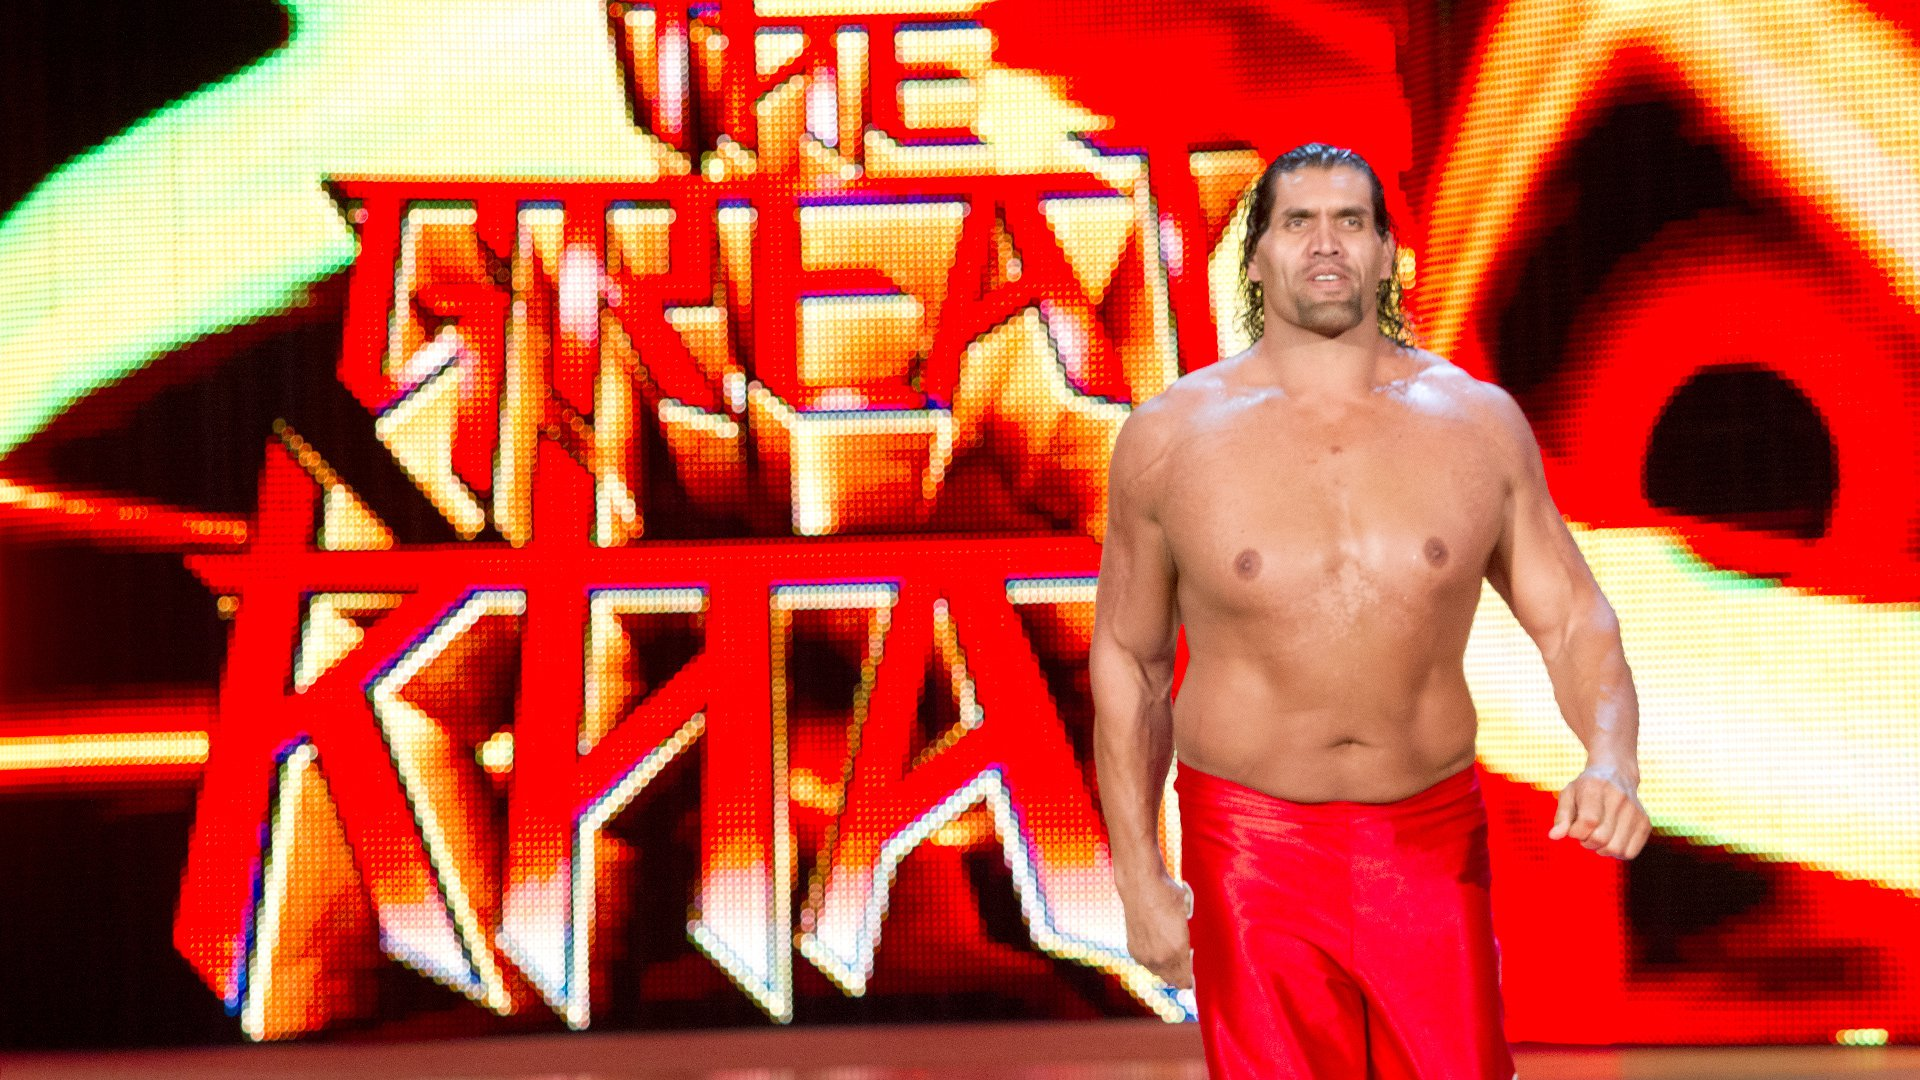 Les 5 plus grands moments du Great Khali